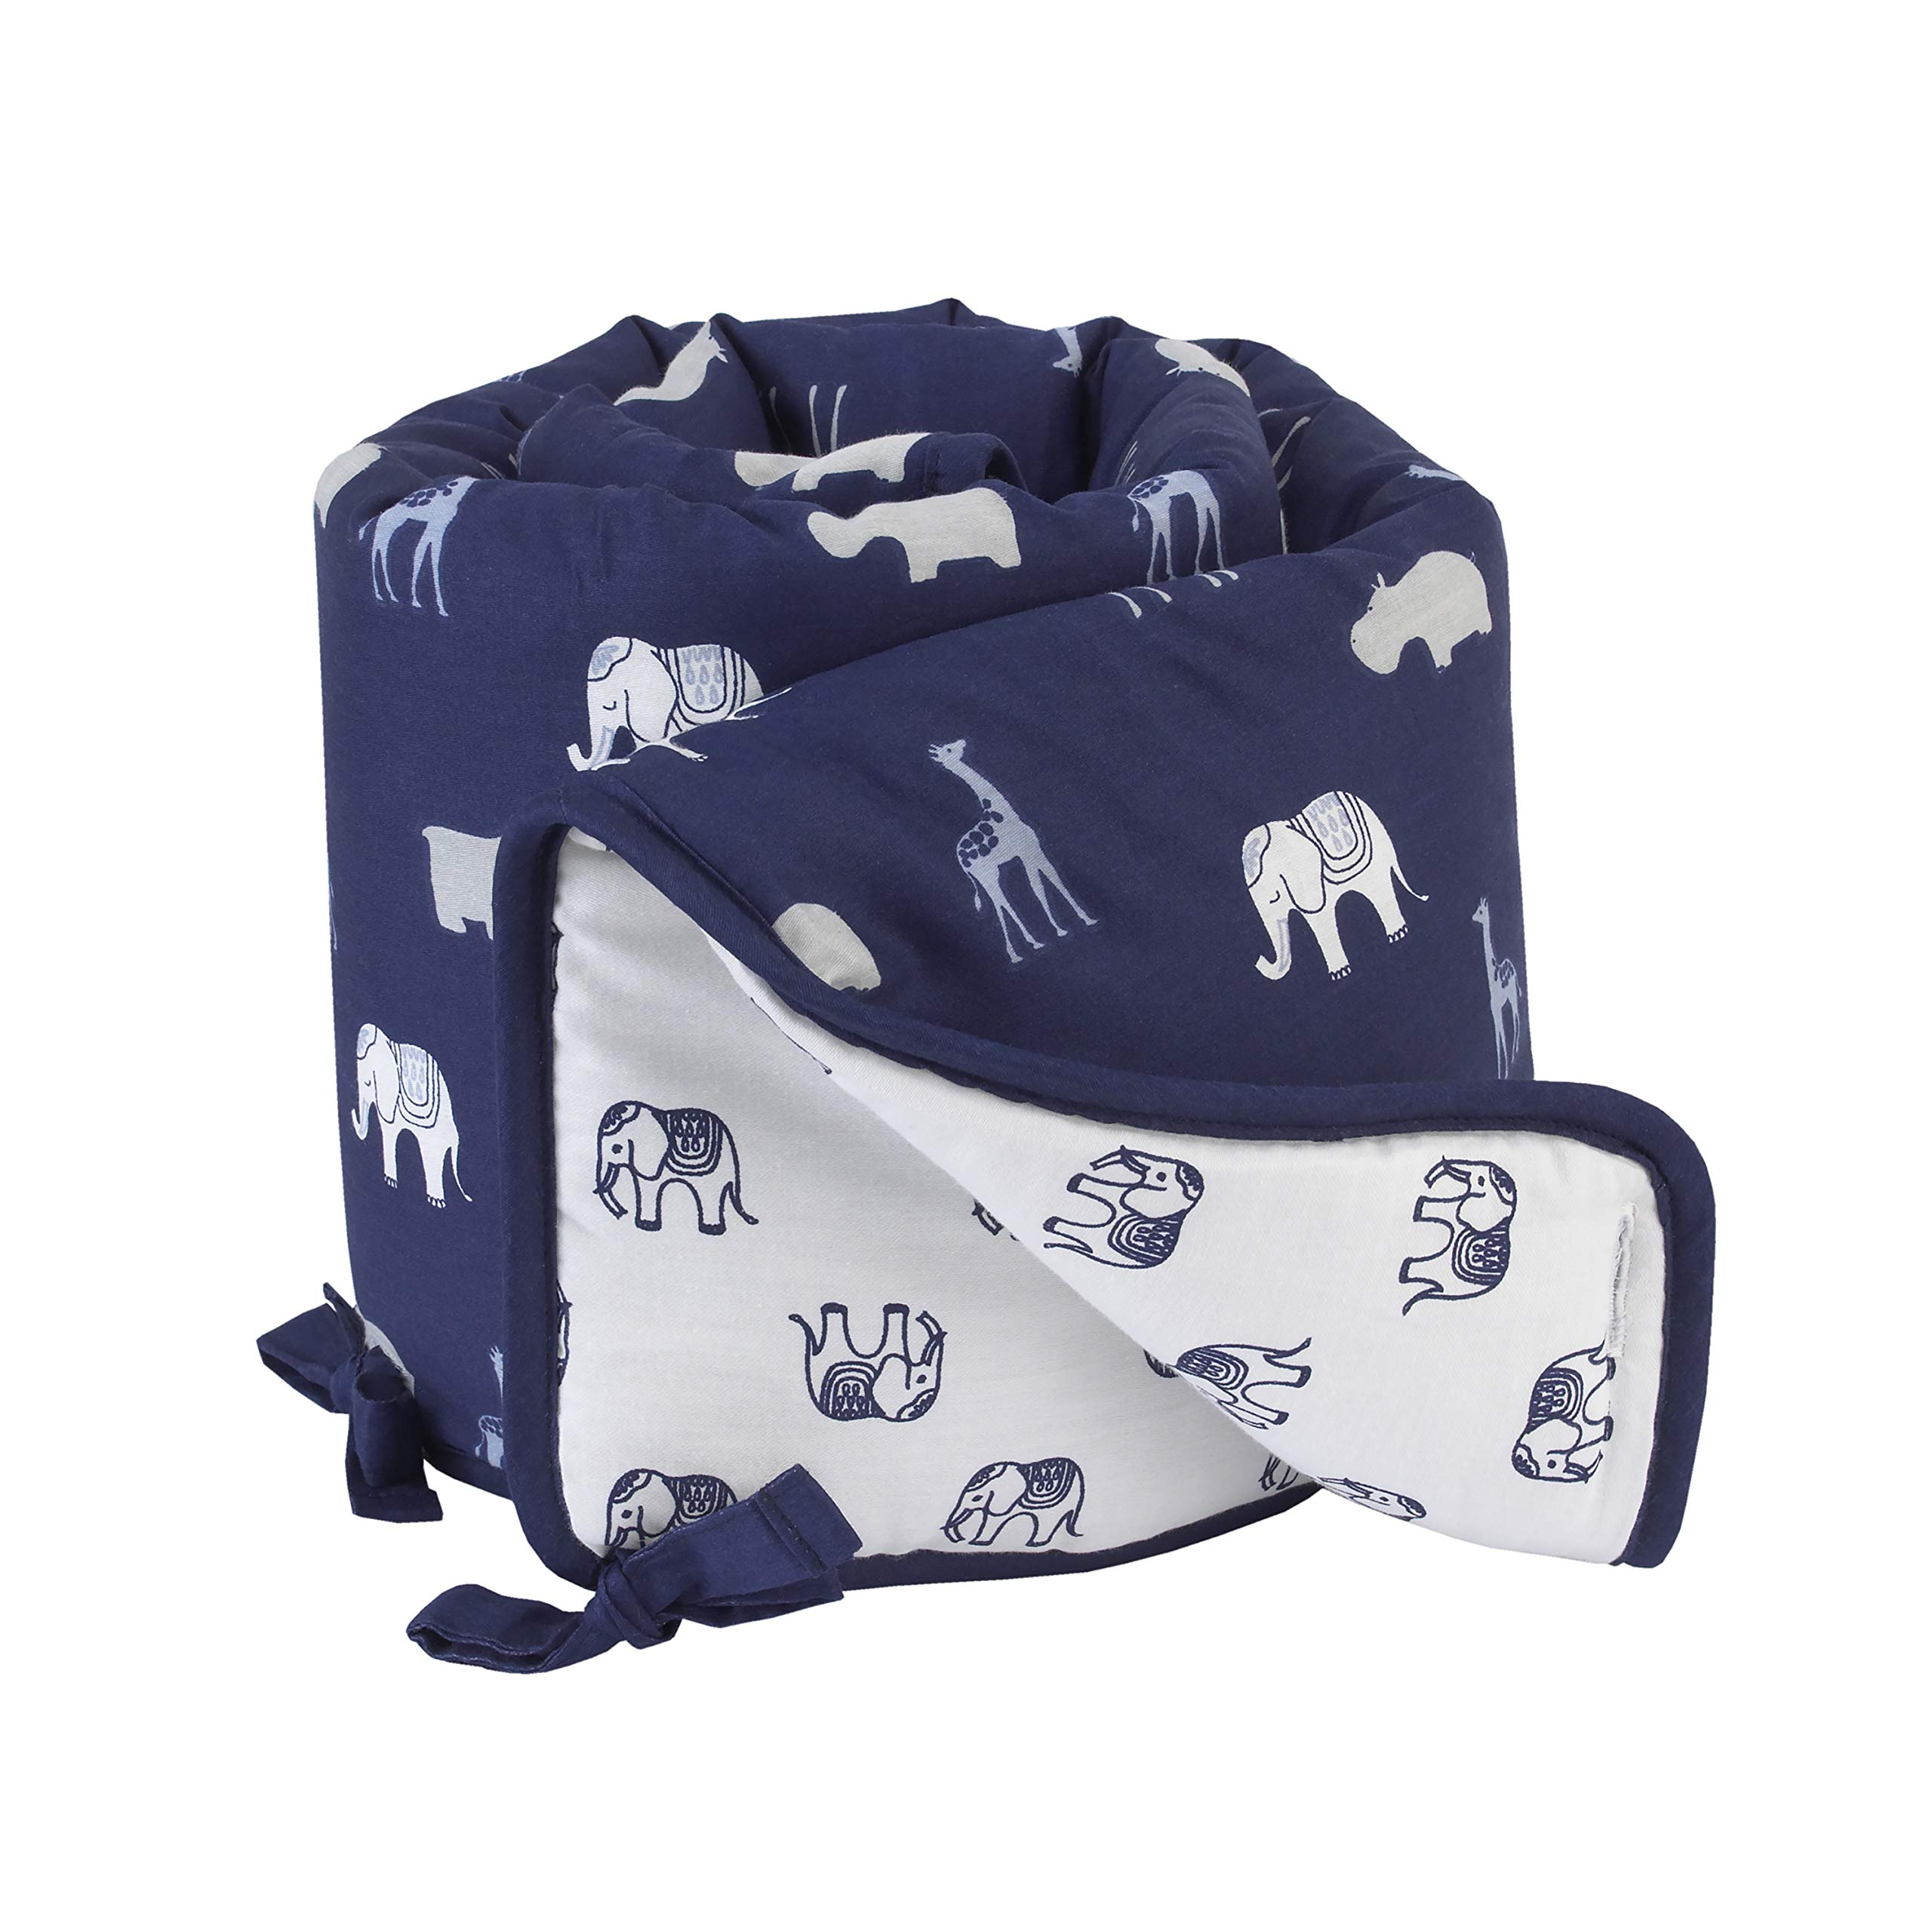 NoJo Serendipity Animal Print 100% Cotton Crib Rail Guard, Navy/Light Blue/Grey/Ivory by NoJo